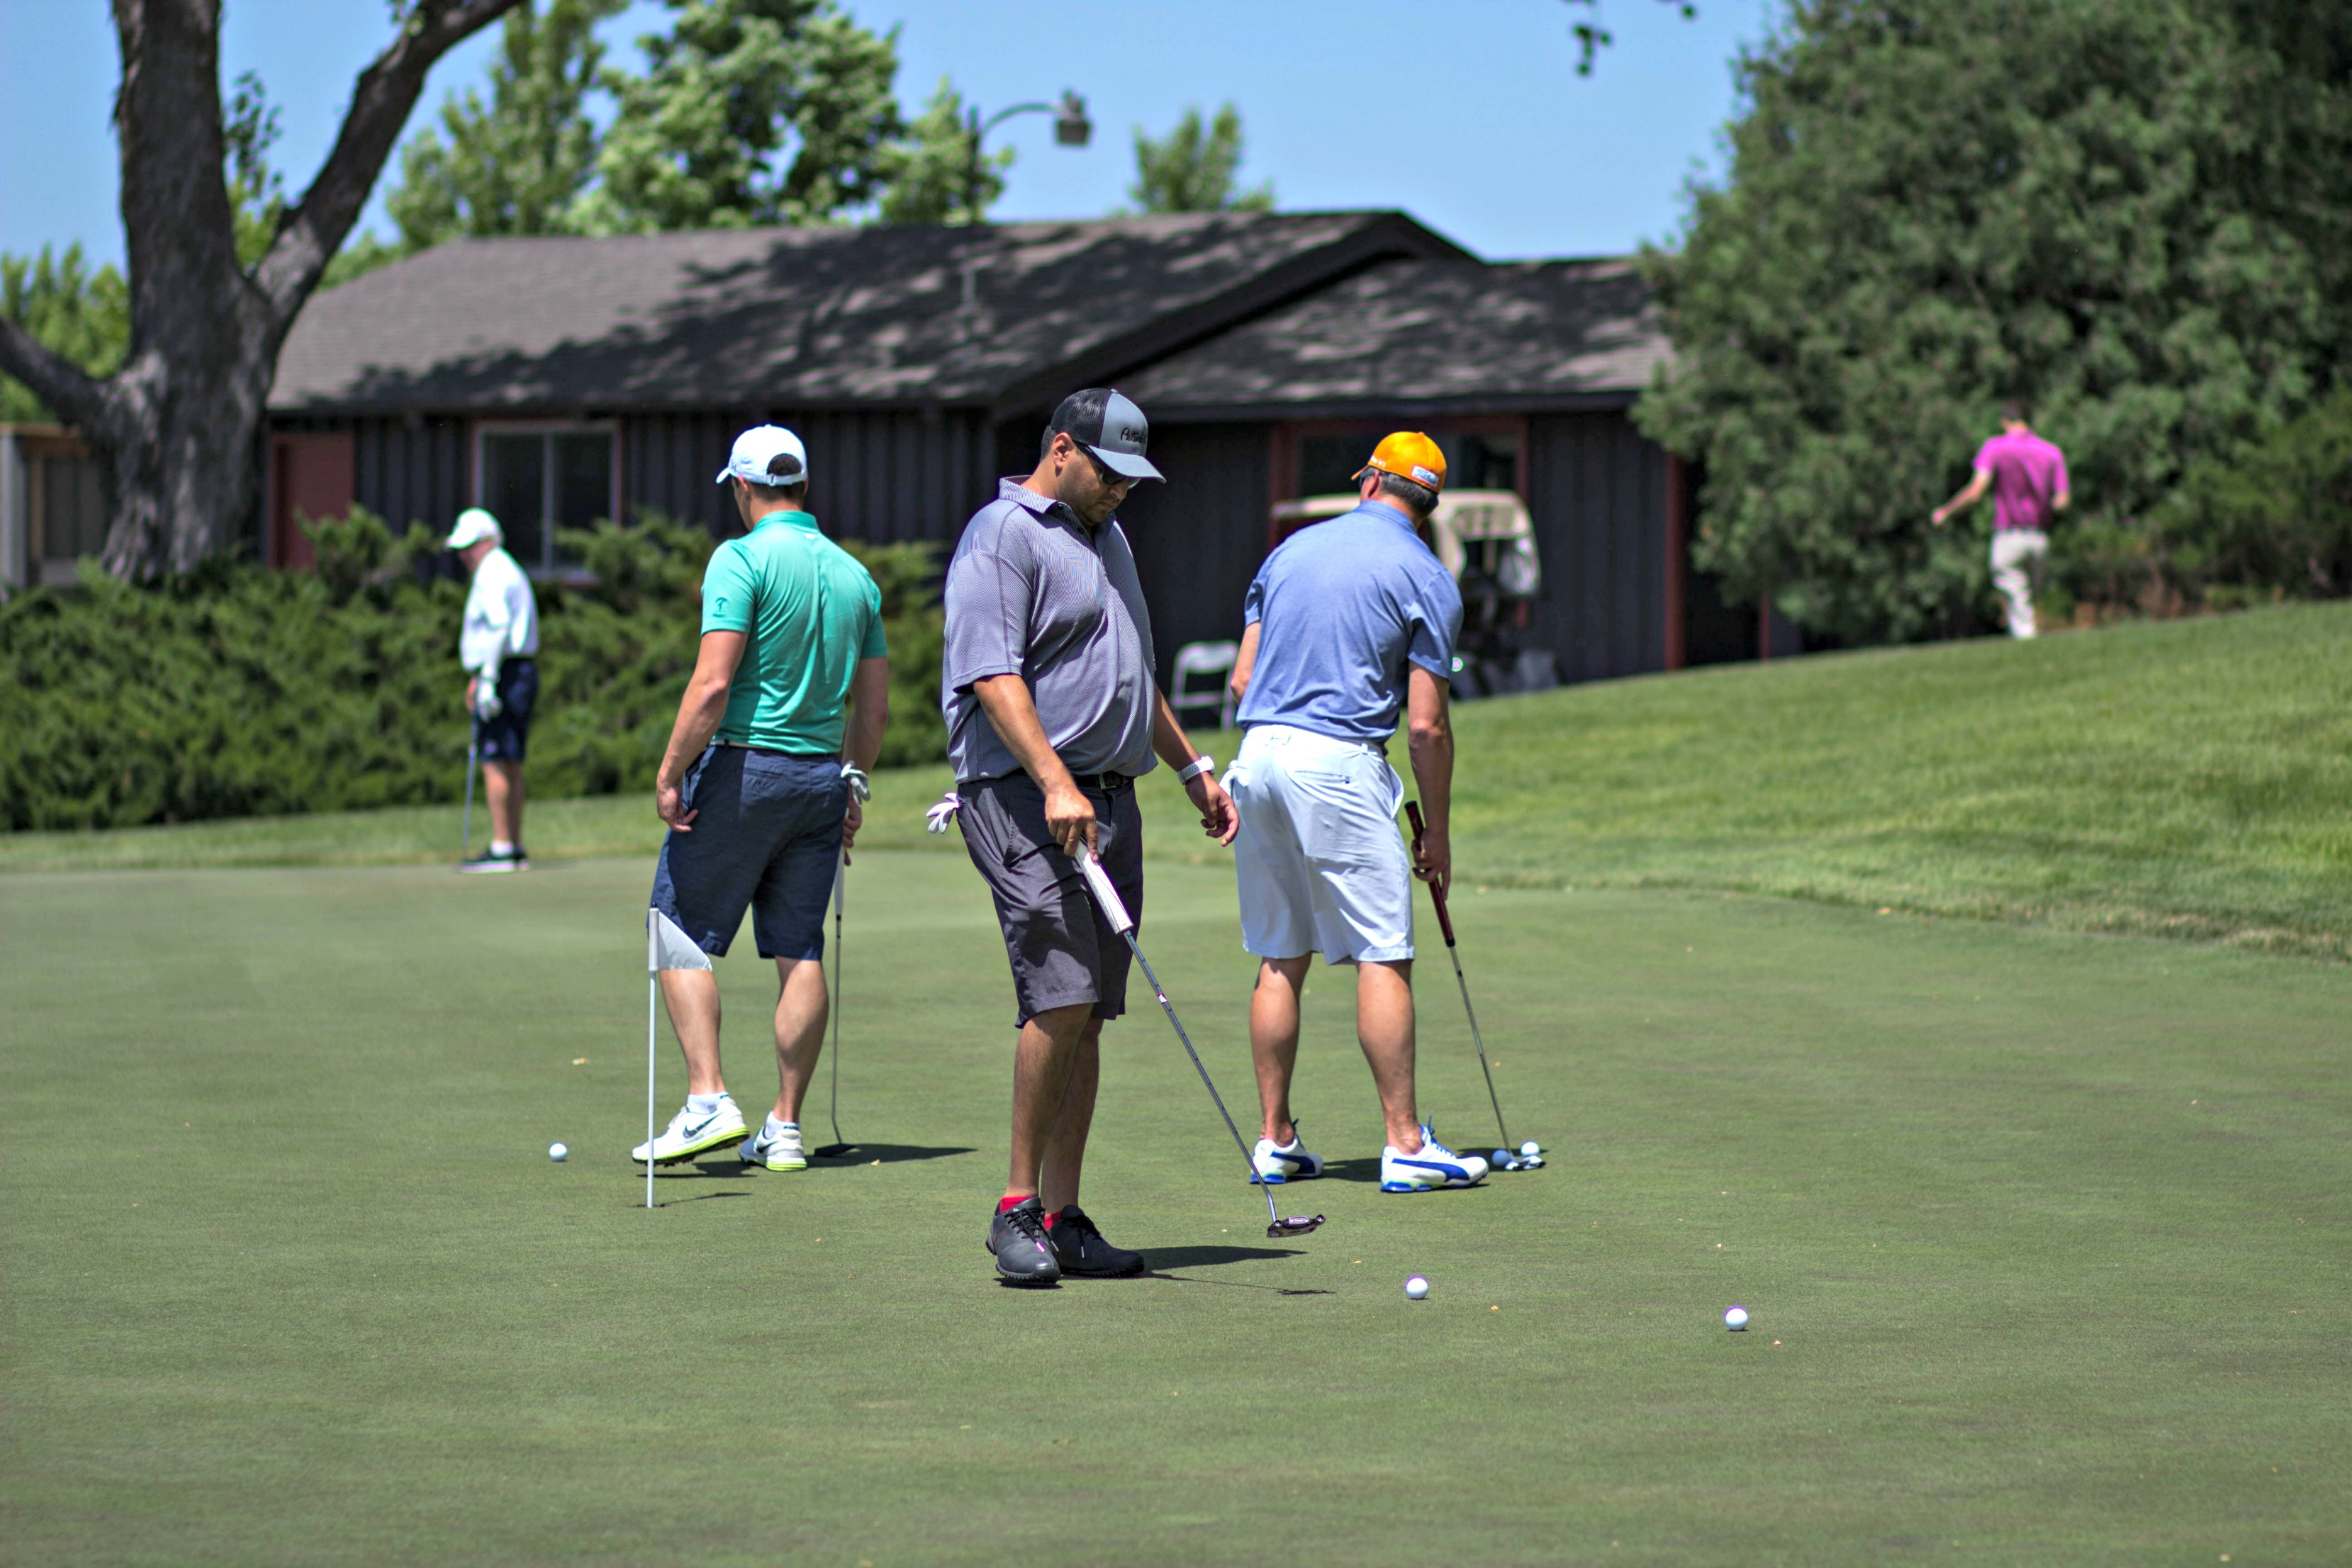 Golfers practice putting during a golf networking event at Hazeltine National Golf Club